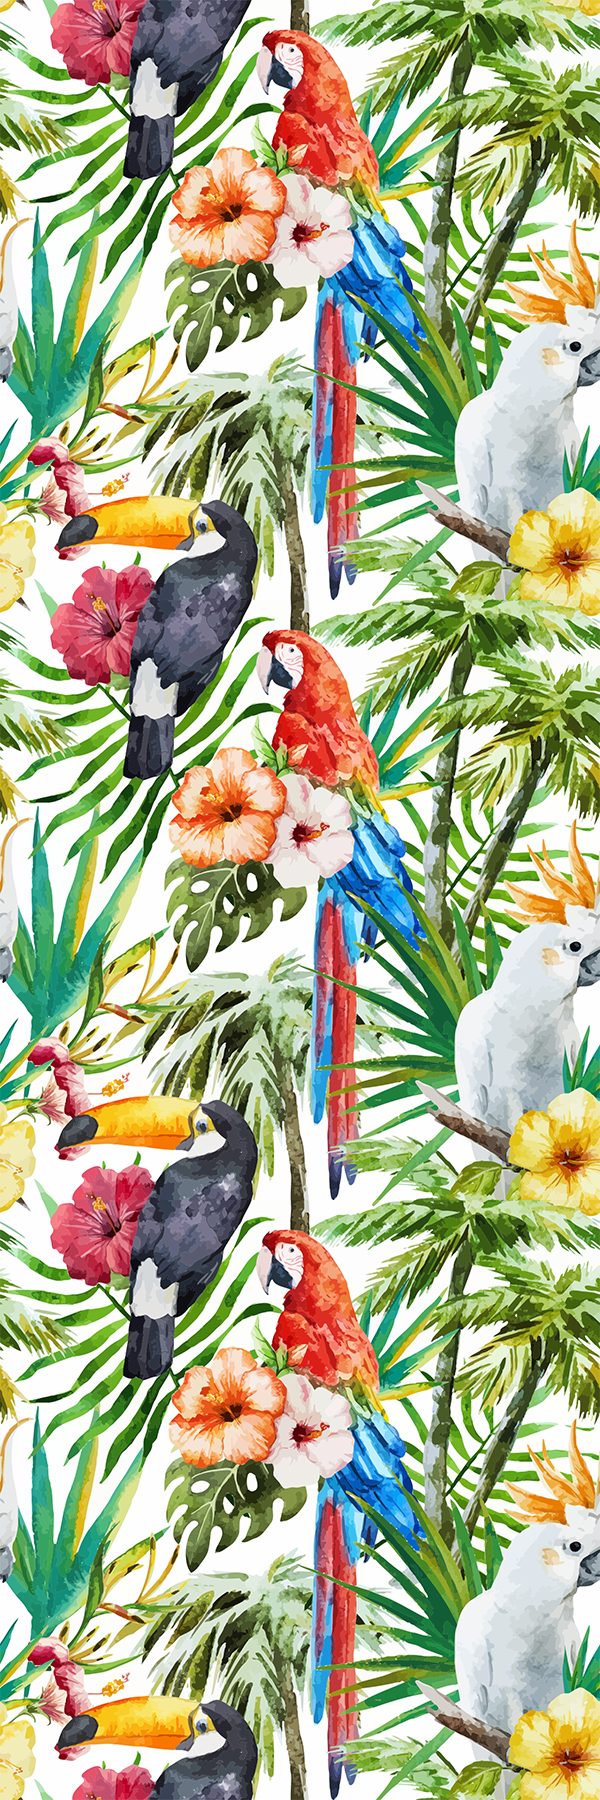 TenStickers. Jungle flora glass door sticker. Decorative door vinyl sticker designed with colorful print of jungle birds and flowers. It is customisable in any required size.